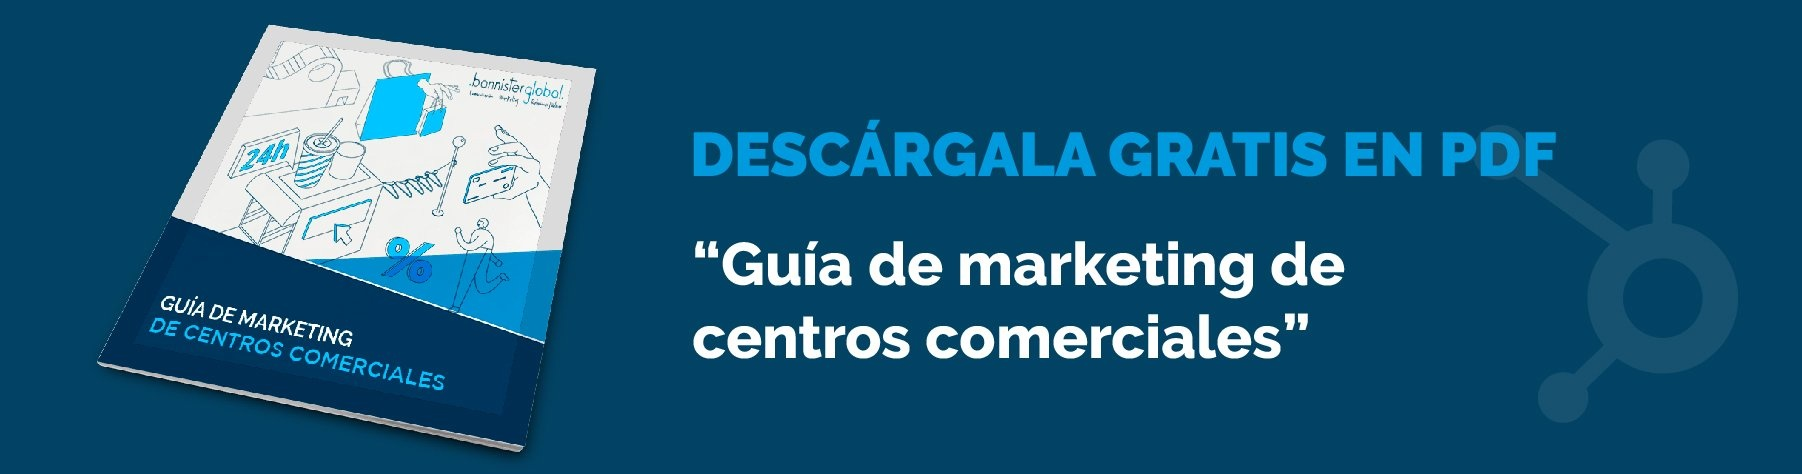 Guía de marketing de centros comerciales